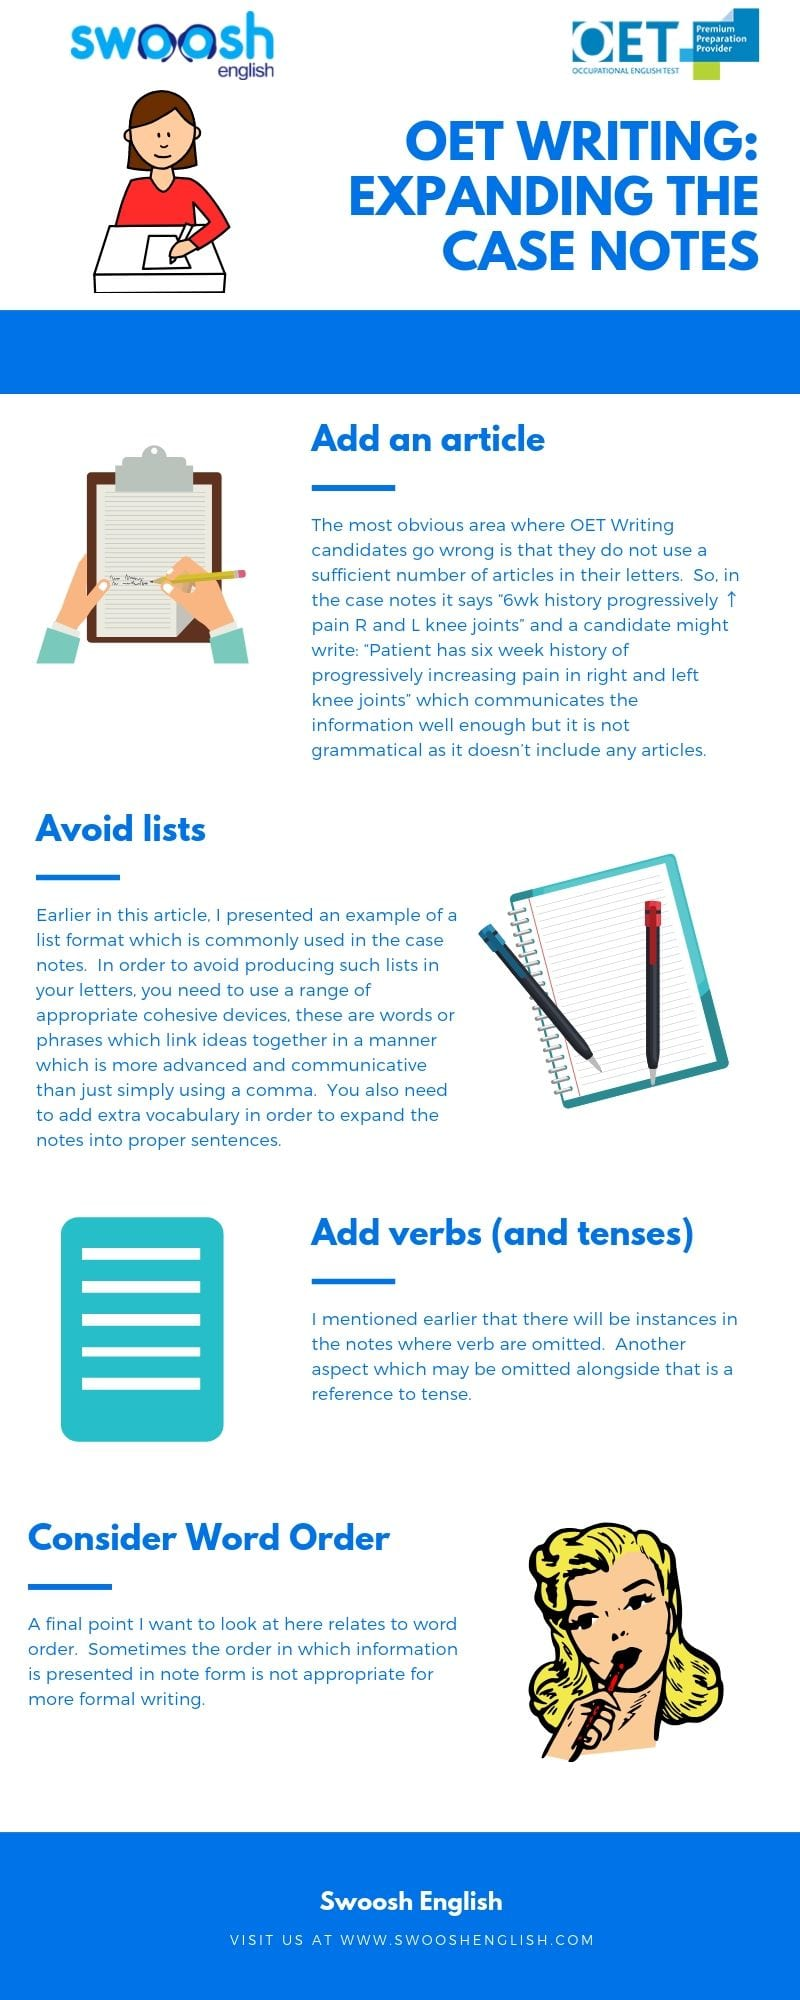 OET Writing: Expanding the Case Notes infographic